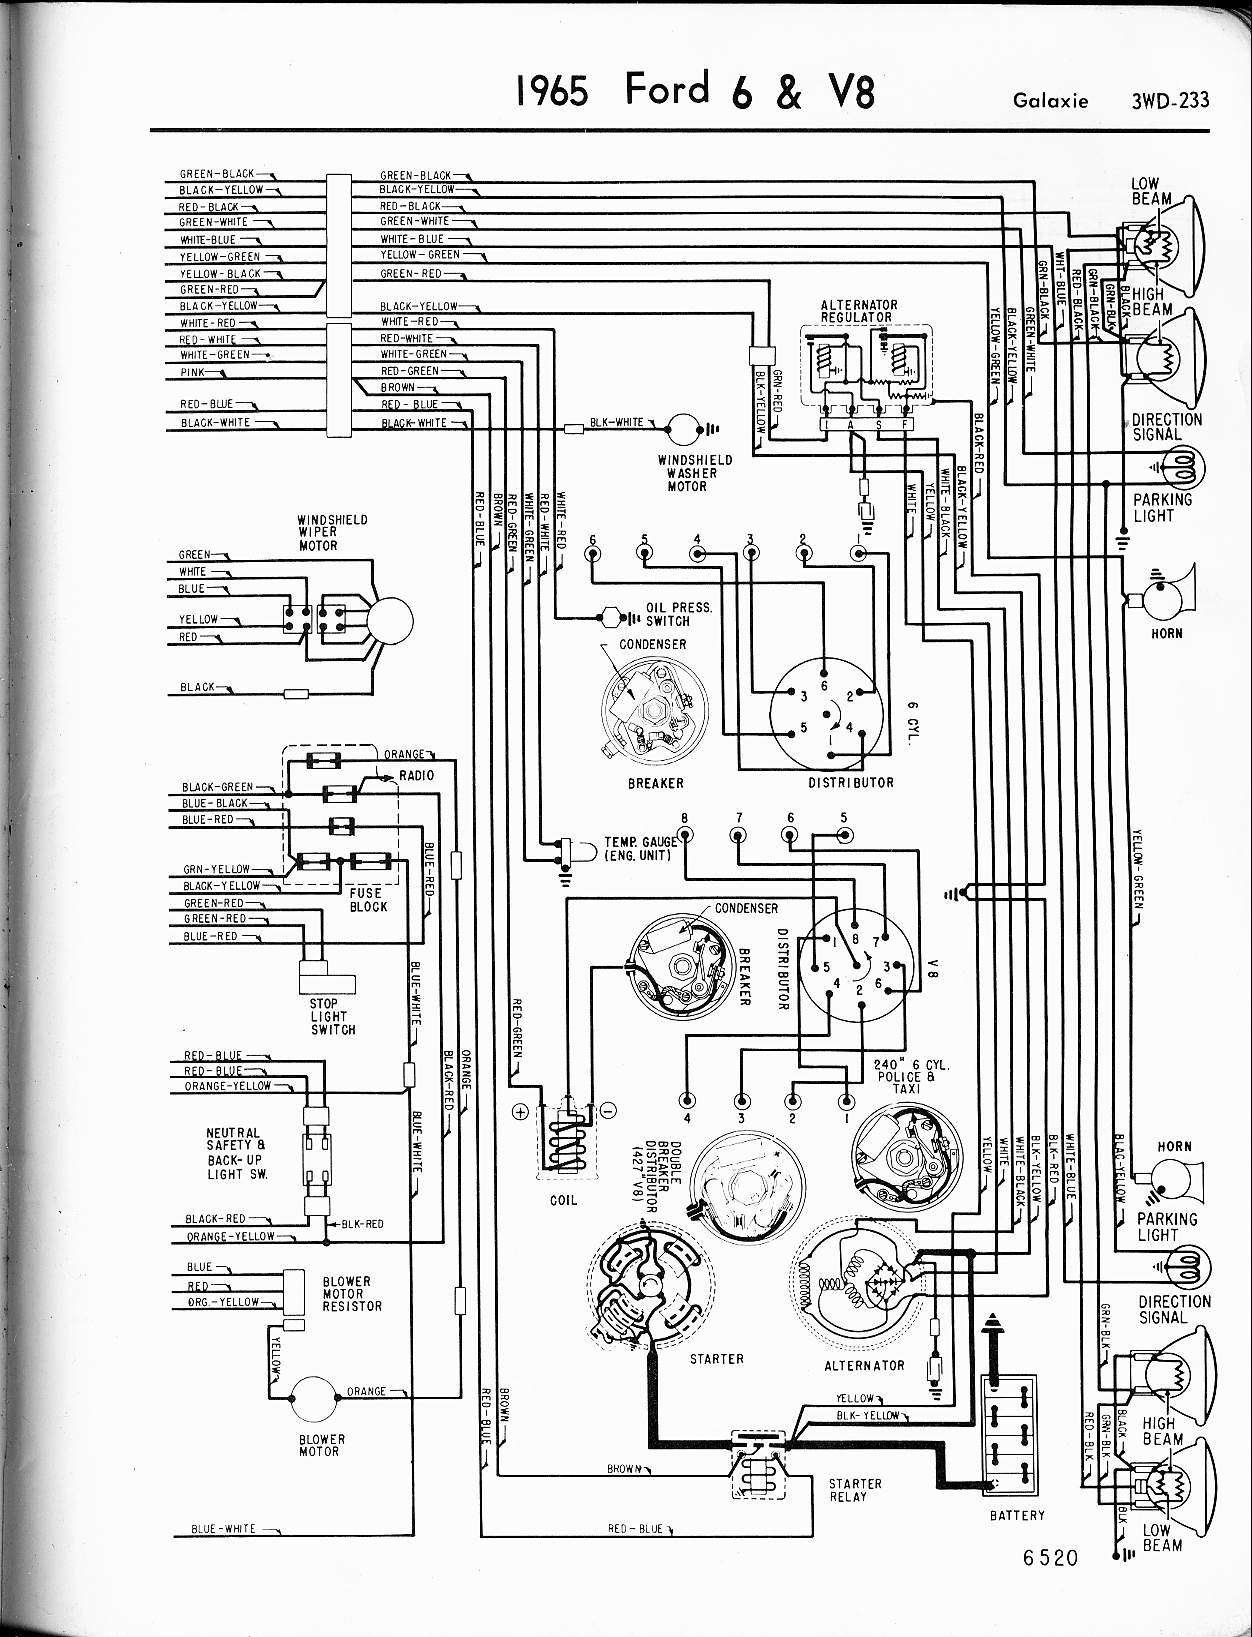 2013 ford e250 wiring diagram ford think wiring diagram ford wiring diagrams